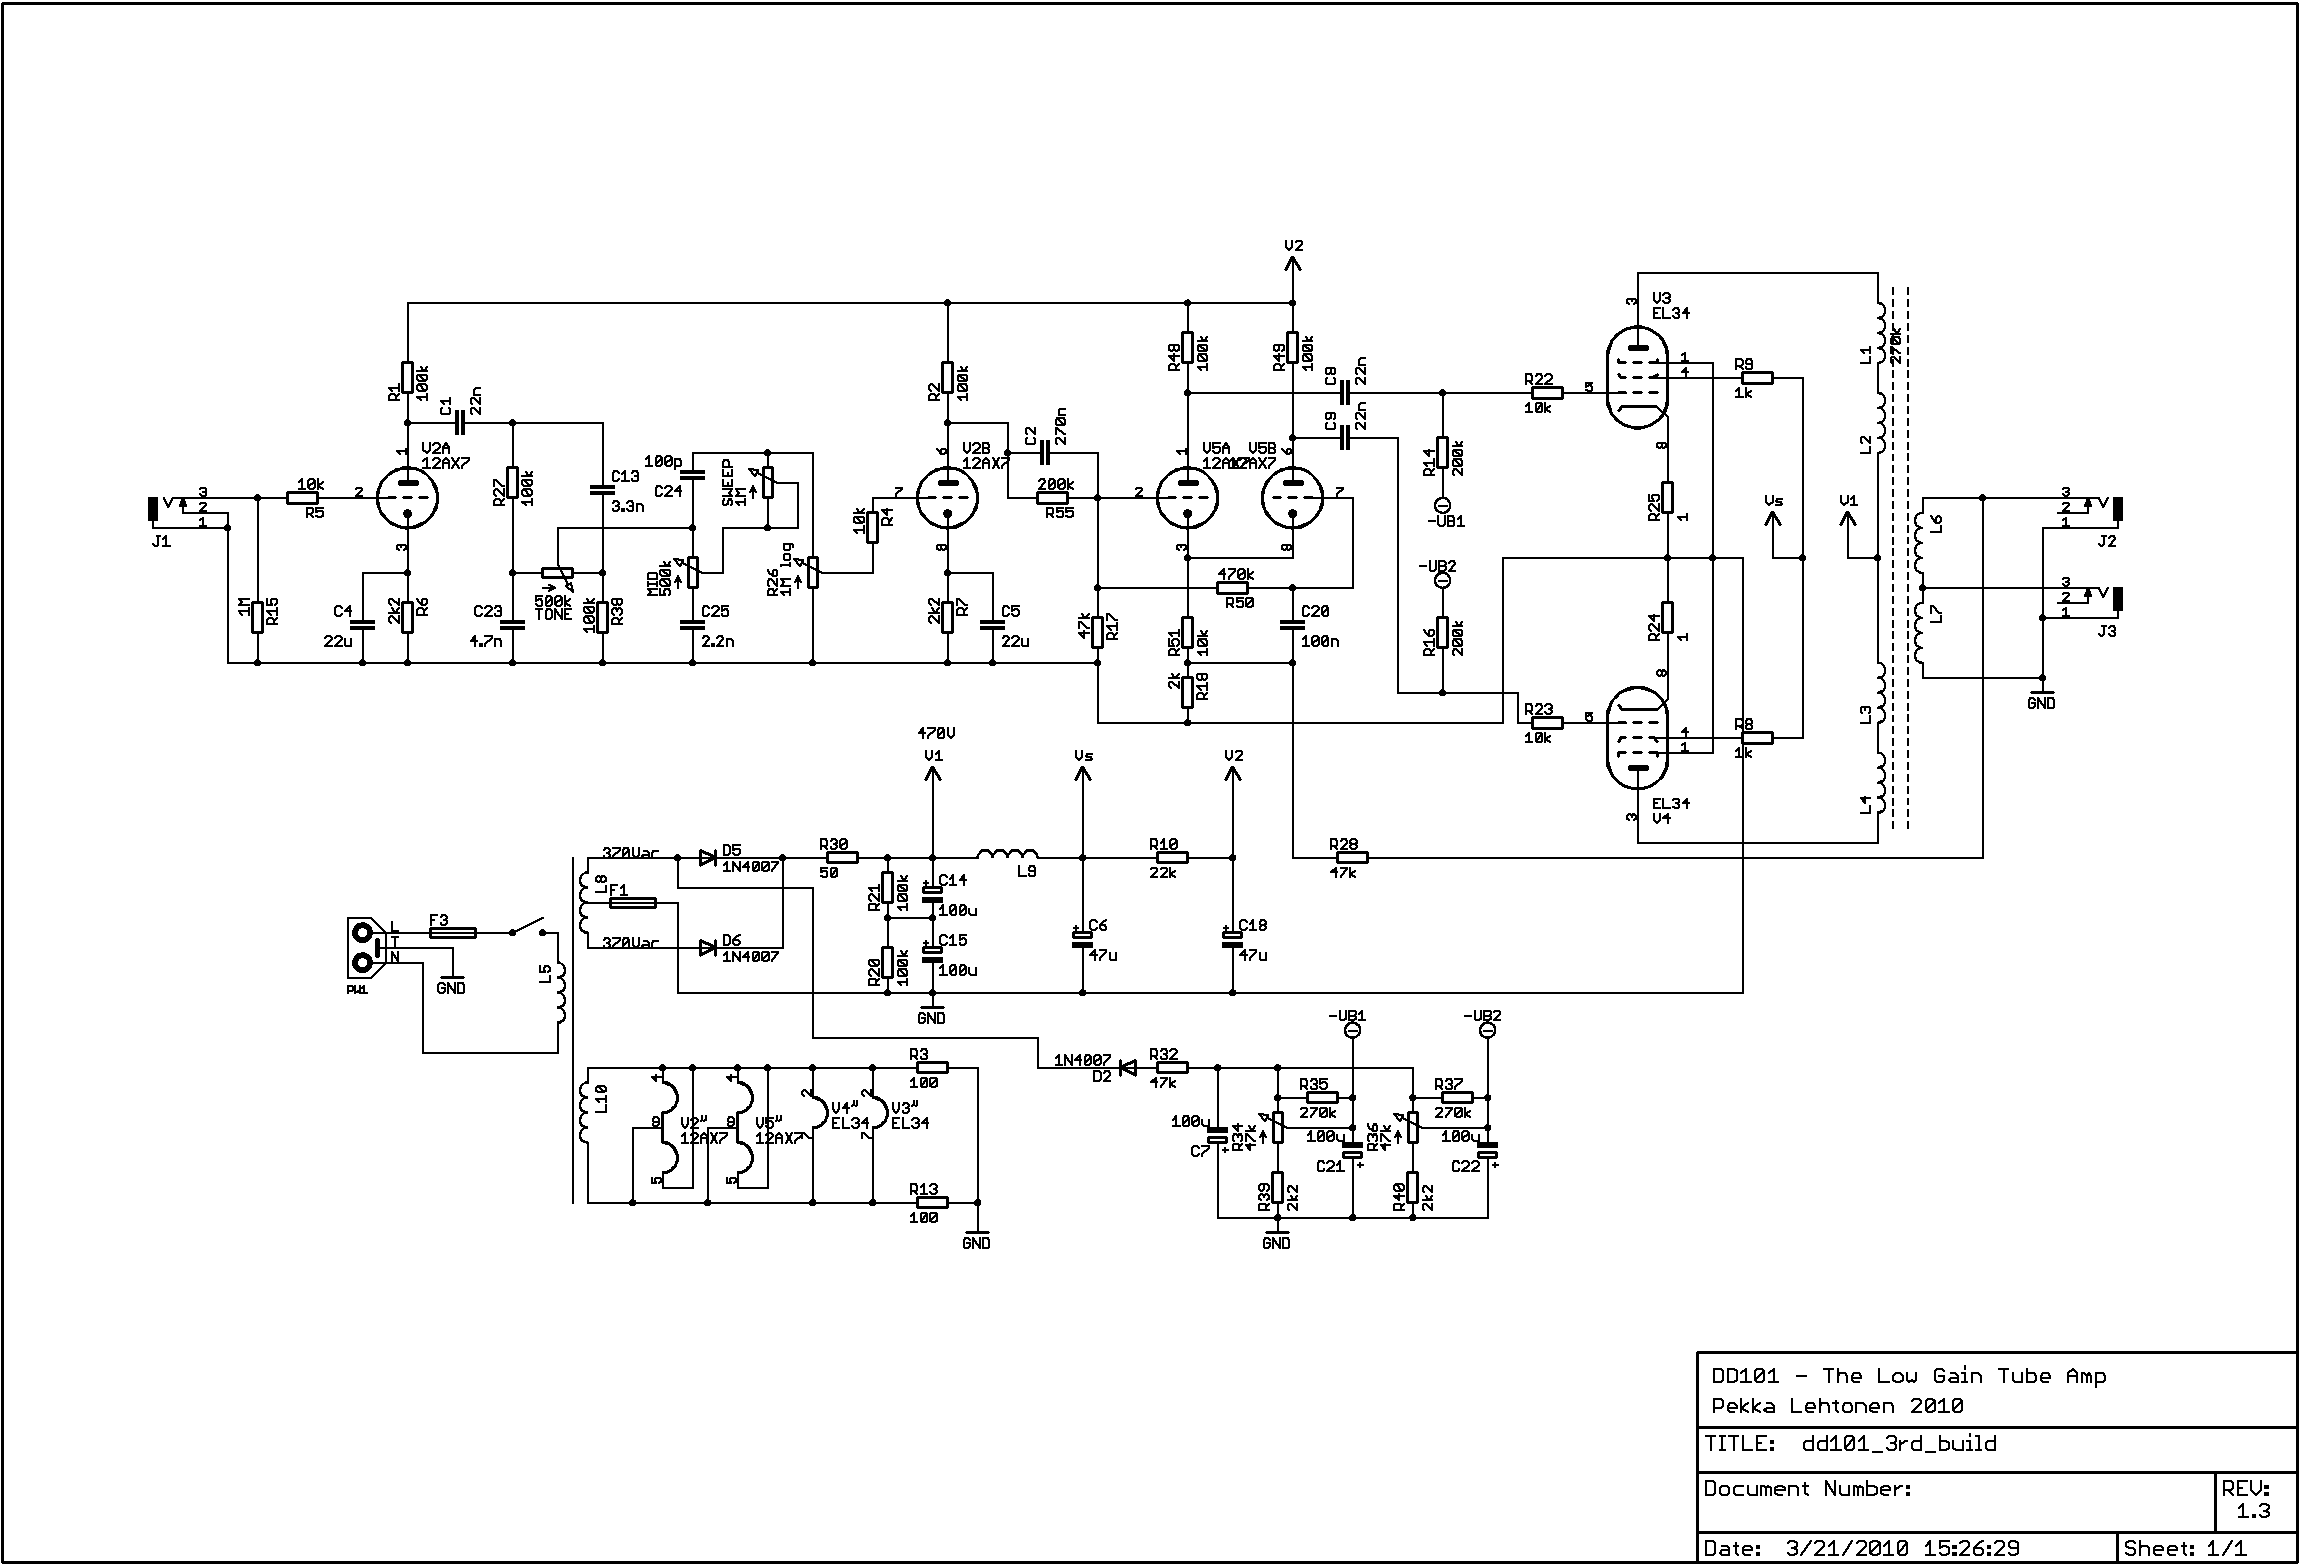 1983 Yamaha Xj550 Wiring Diagram Will Be A Thing Xj650 Maxim It 250 Xj 81 550